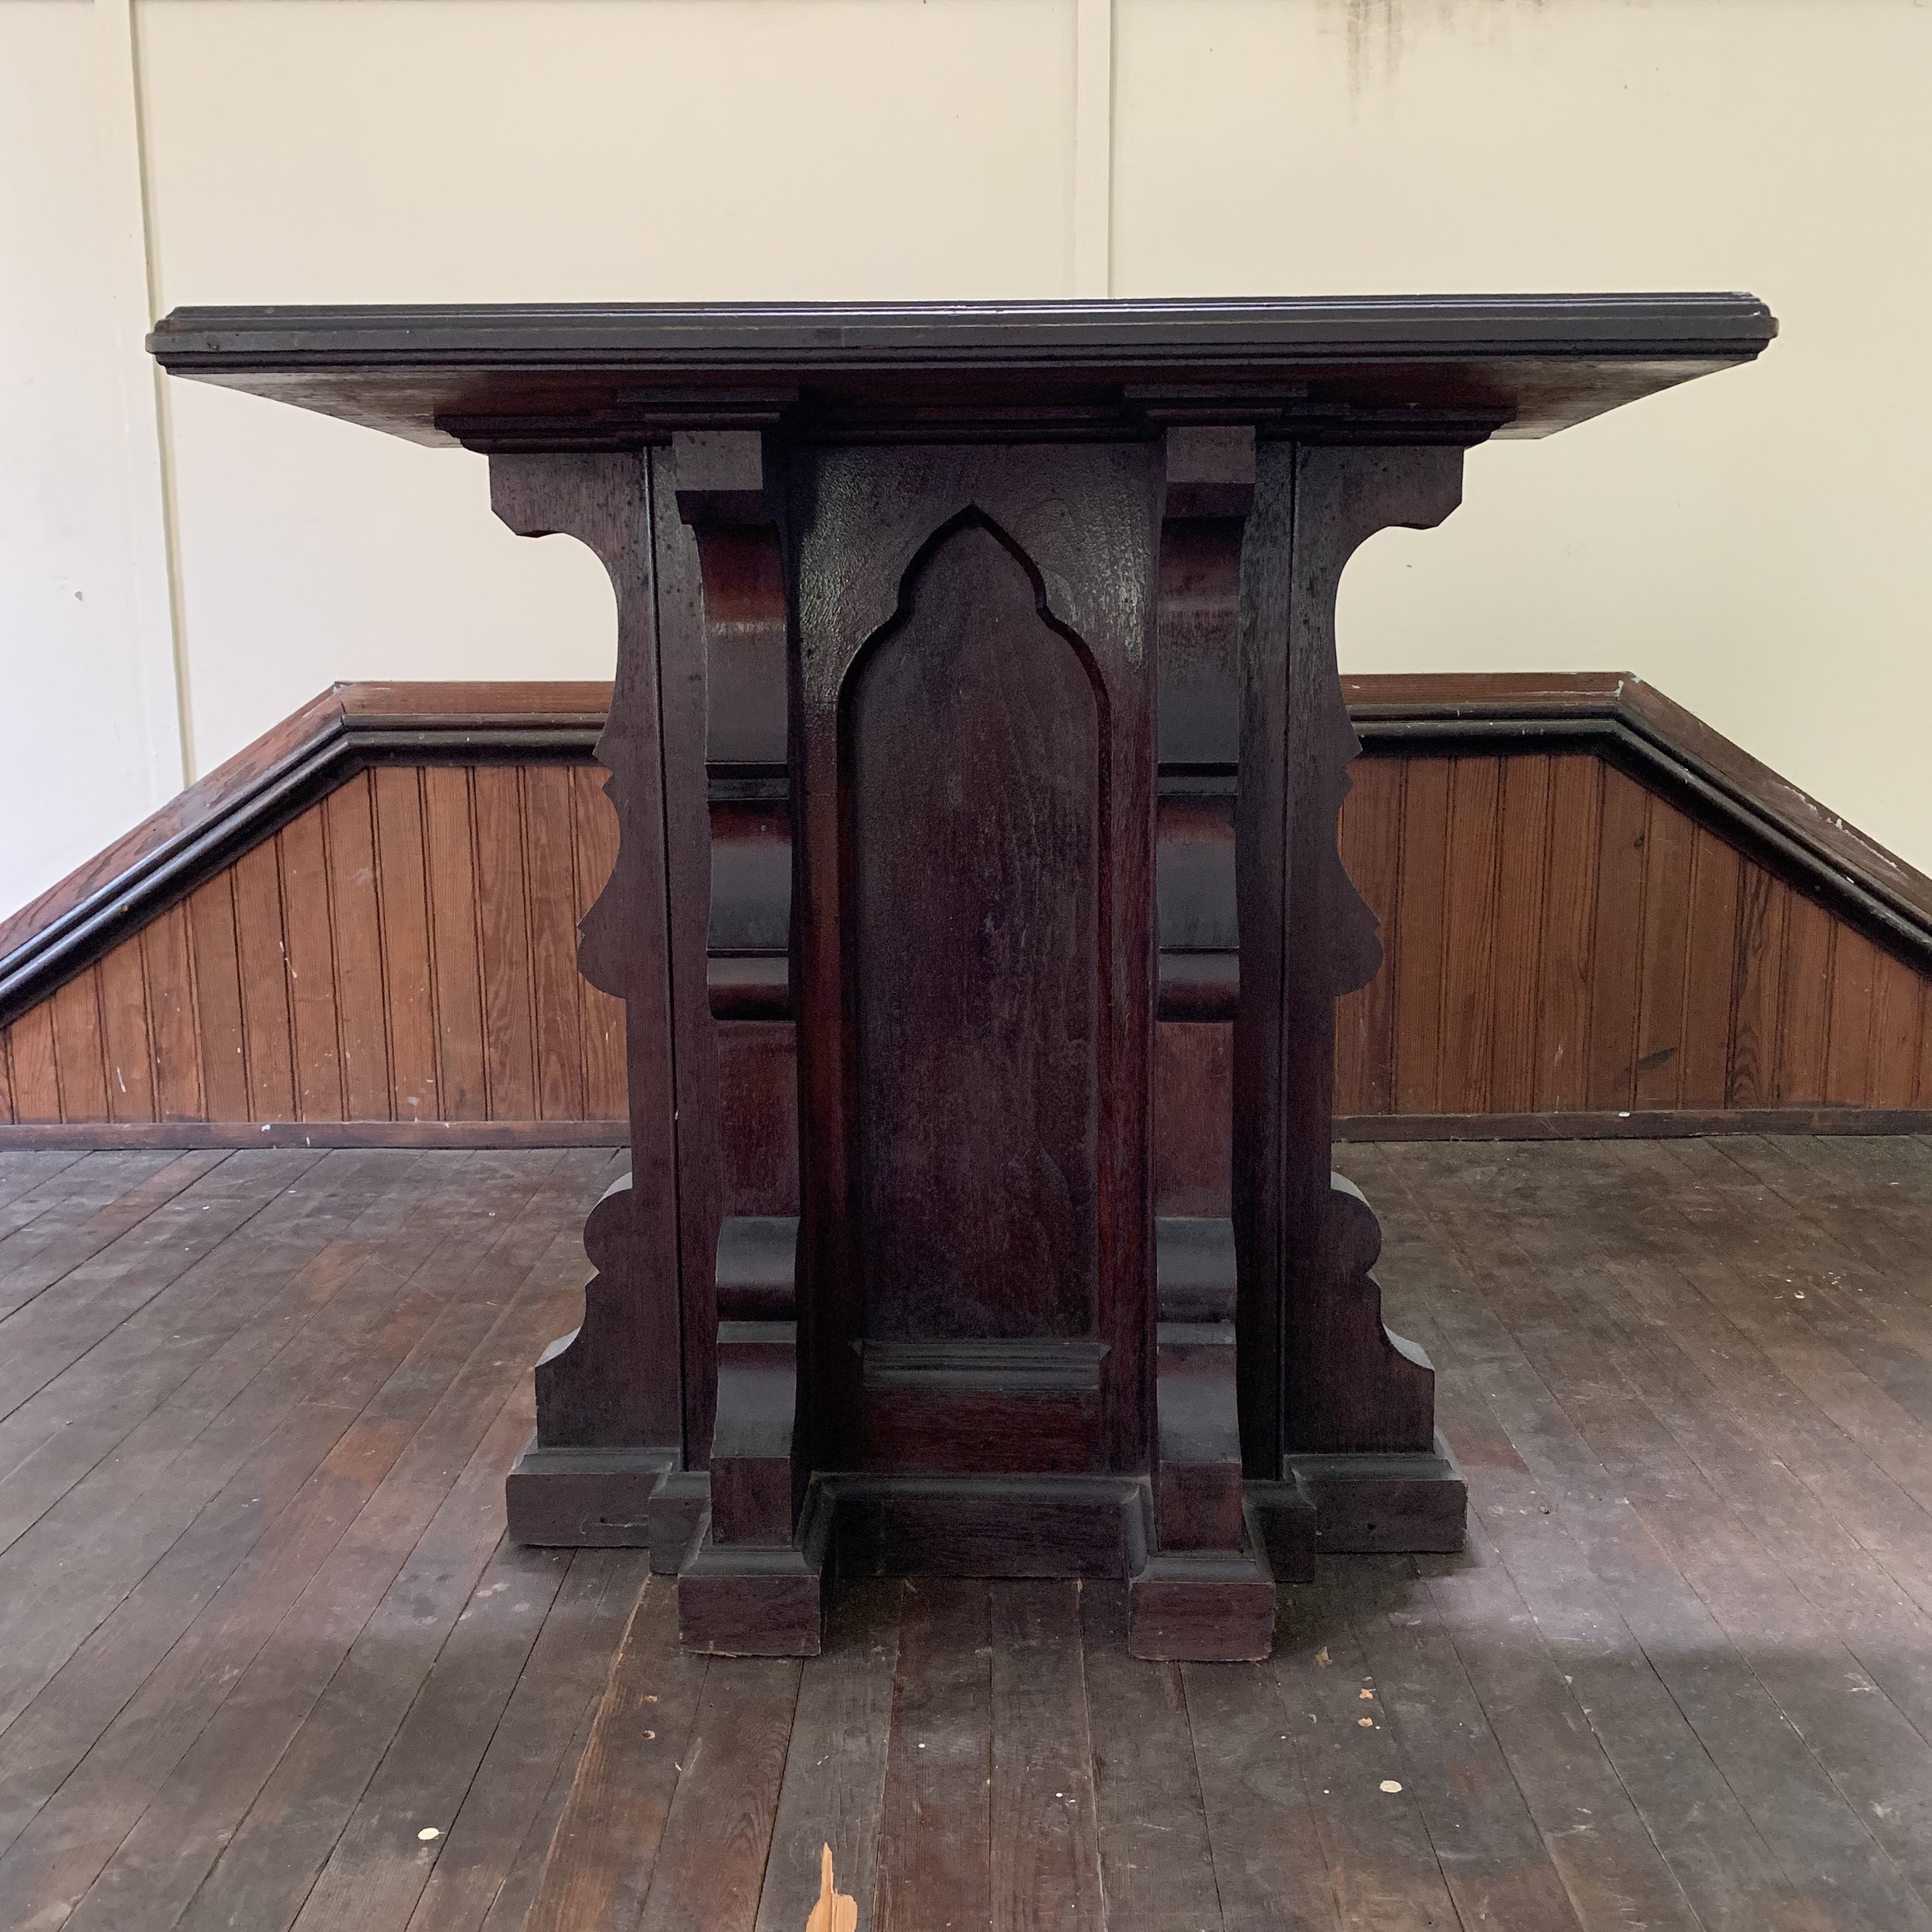 The pulpit at the John Wesley Church in Waterford.